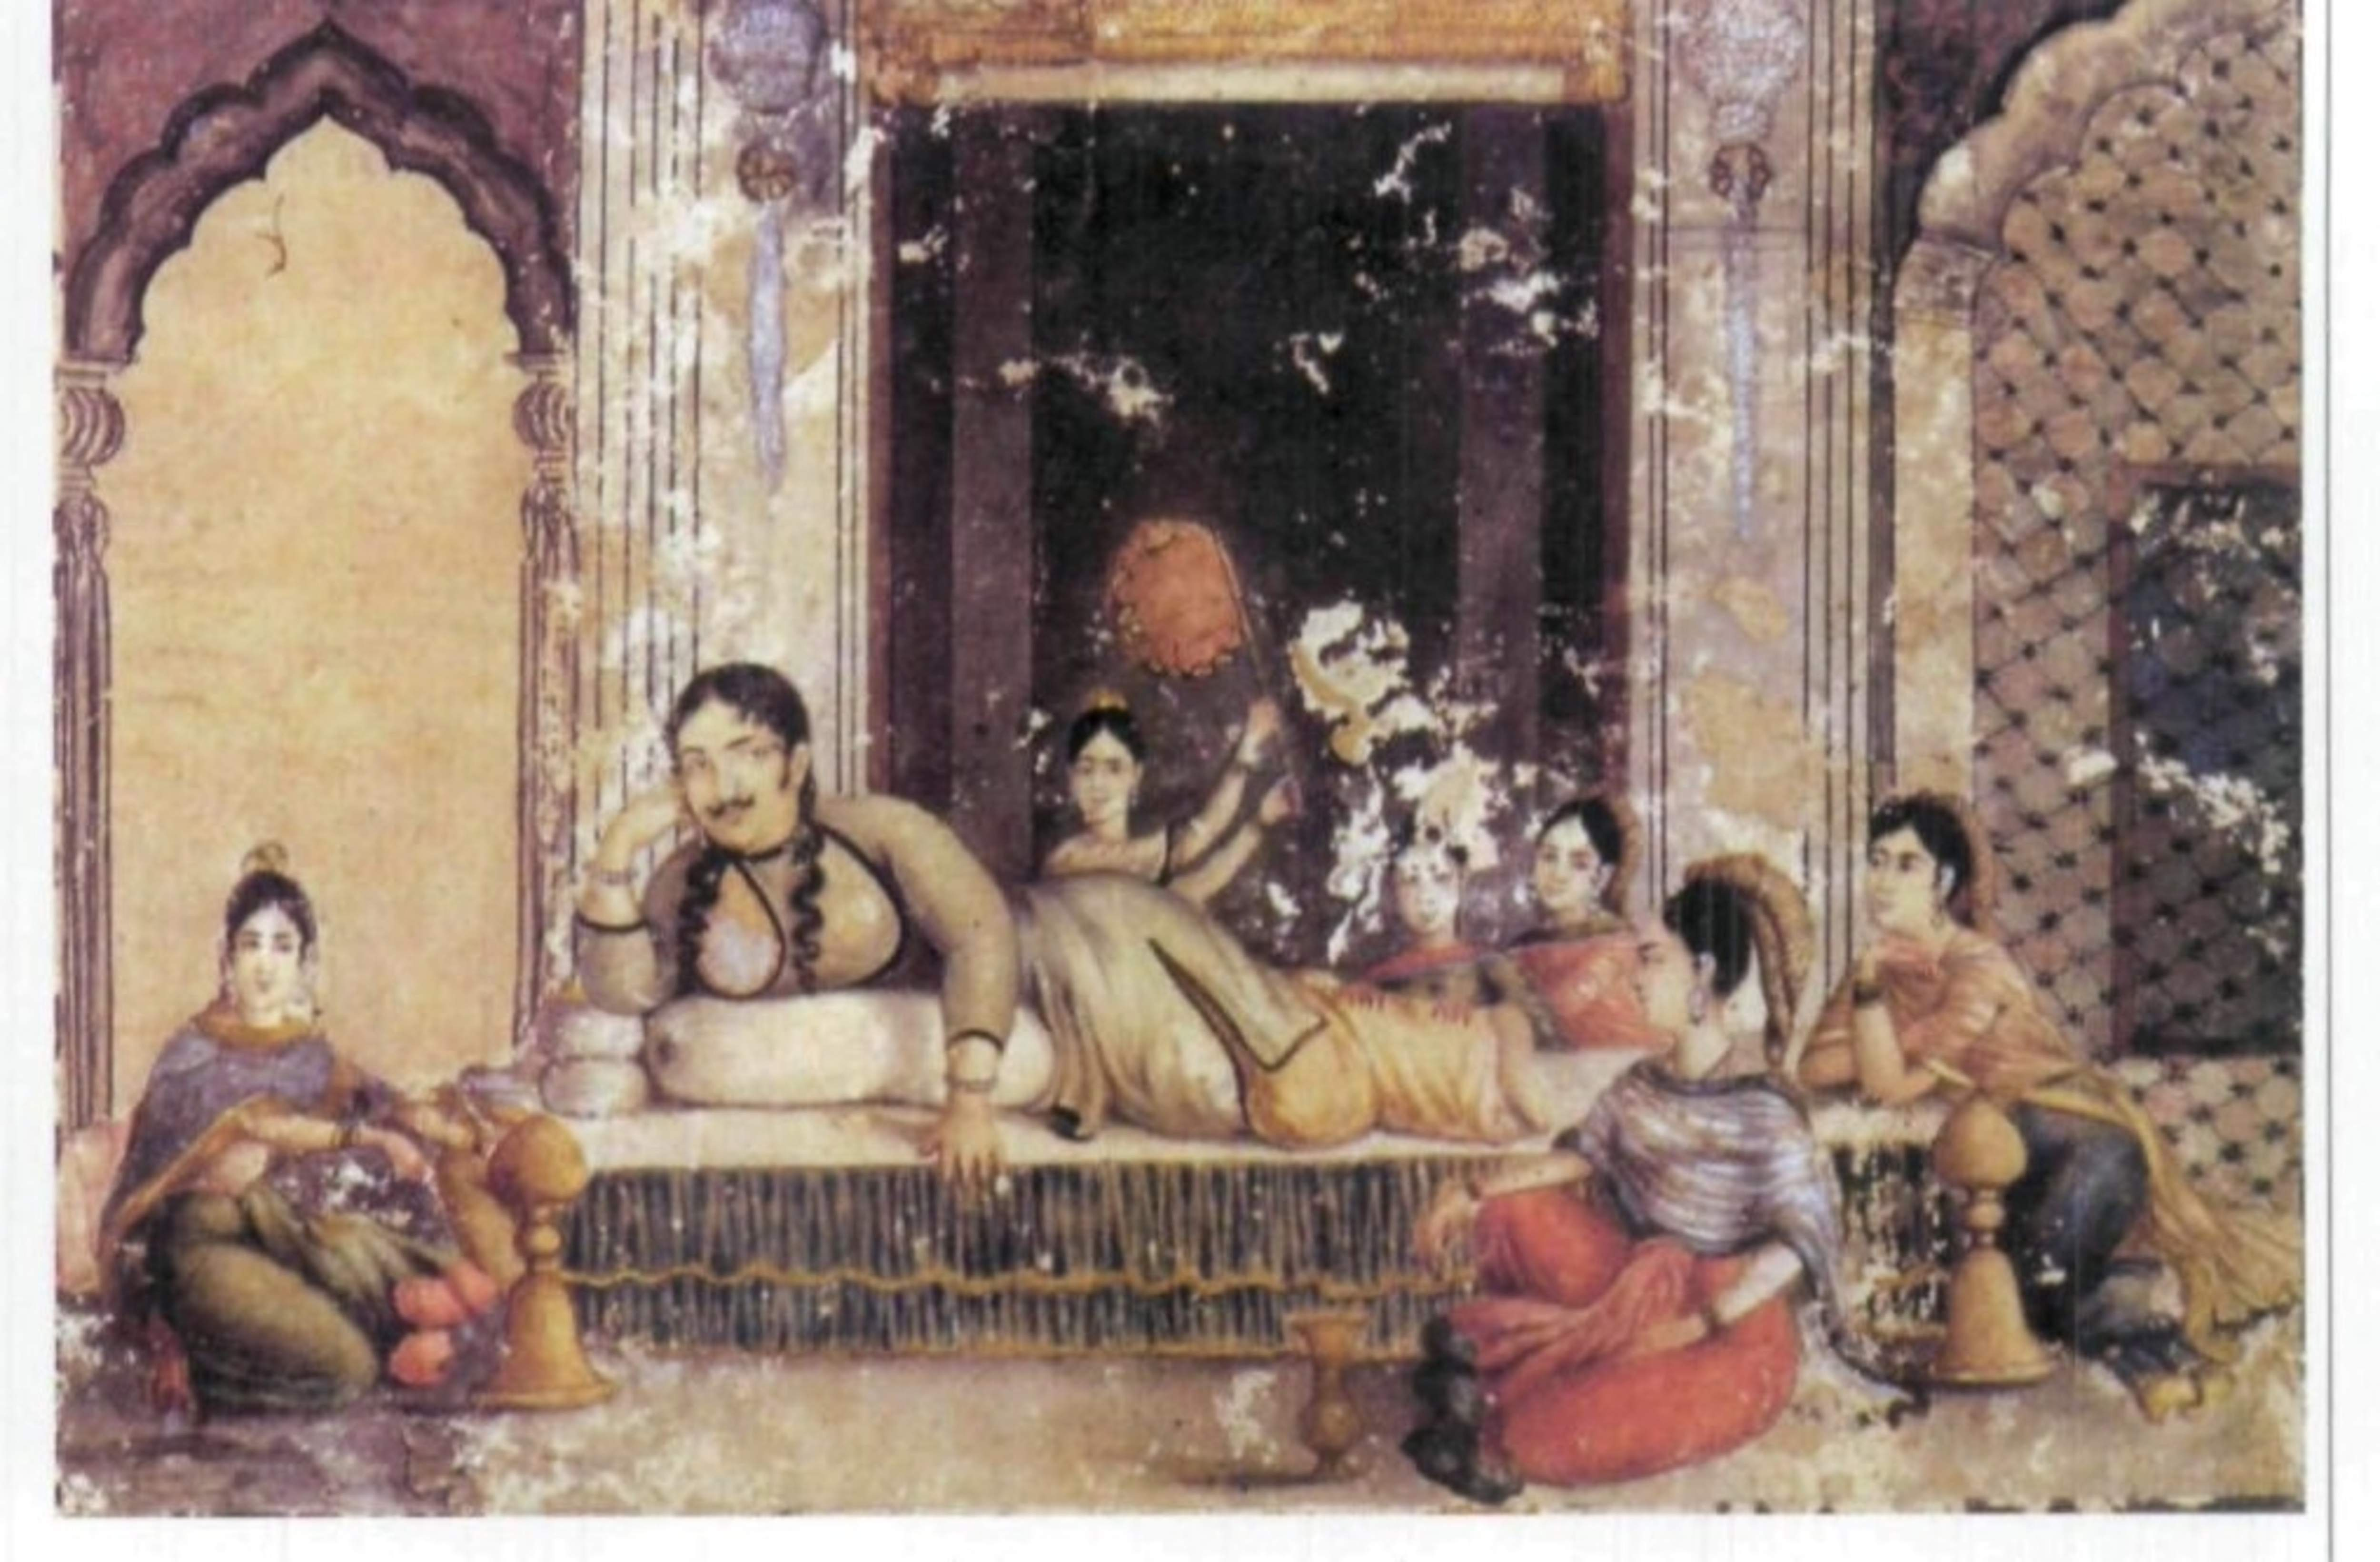 Nawab Wajid Ali Shah in the 'Fairy House', a sort of harem for girls who caught his eye, guarded by African women. c. 1800. (Rosie Llewellyn-Jones, Pinterest)